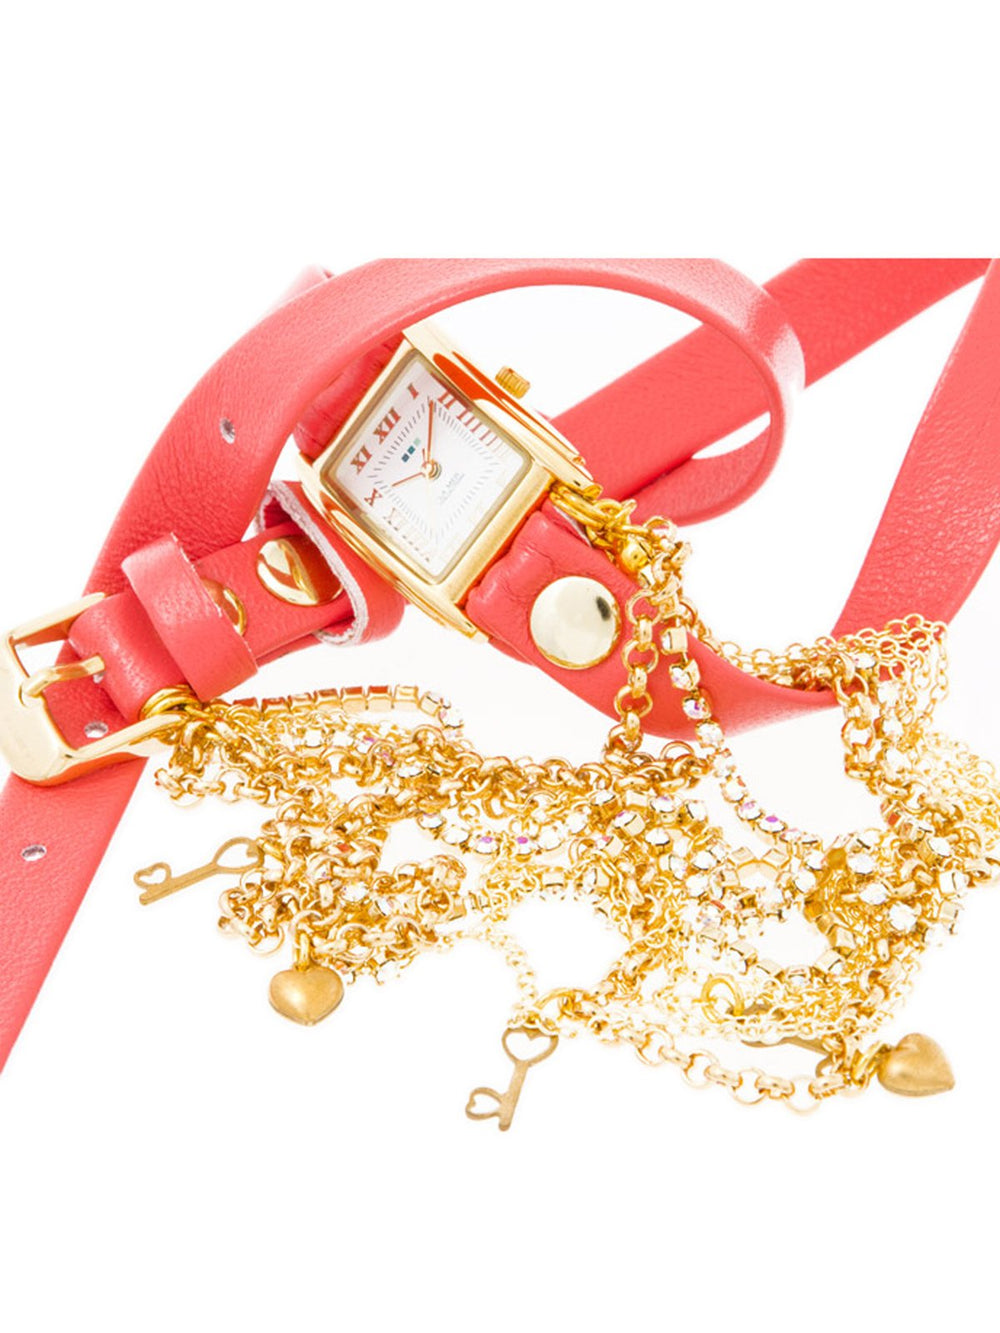 Charm Wraps Tokyo Crystal Watch, LA MER COLLECTIONS - elilhaam.com